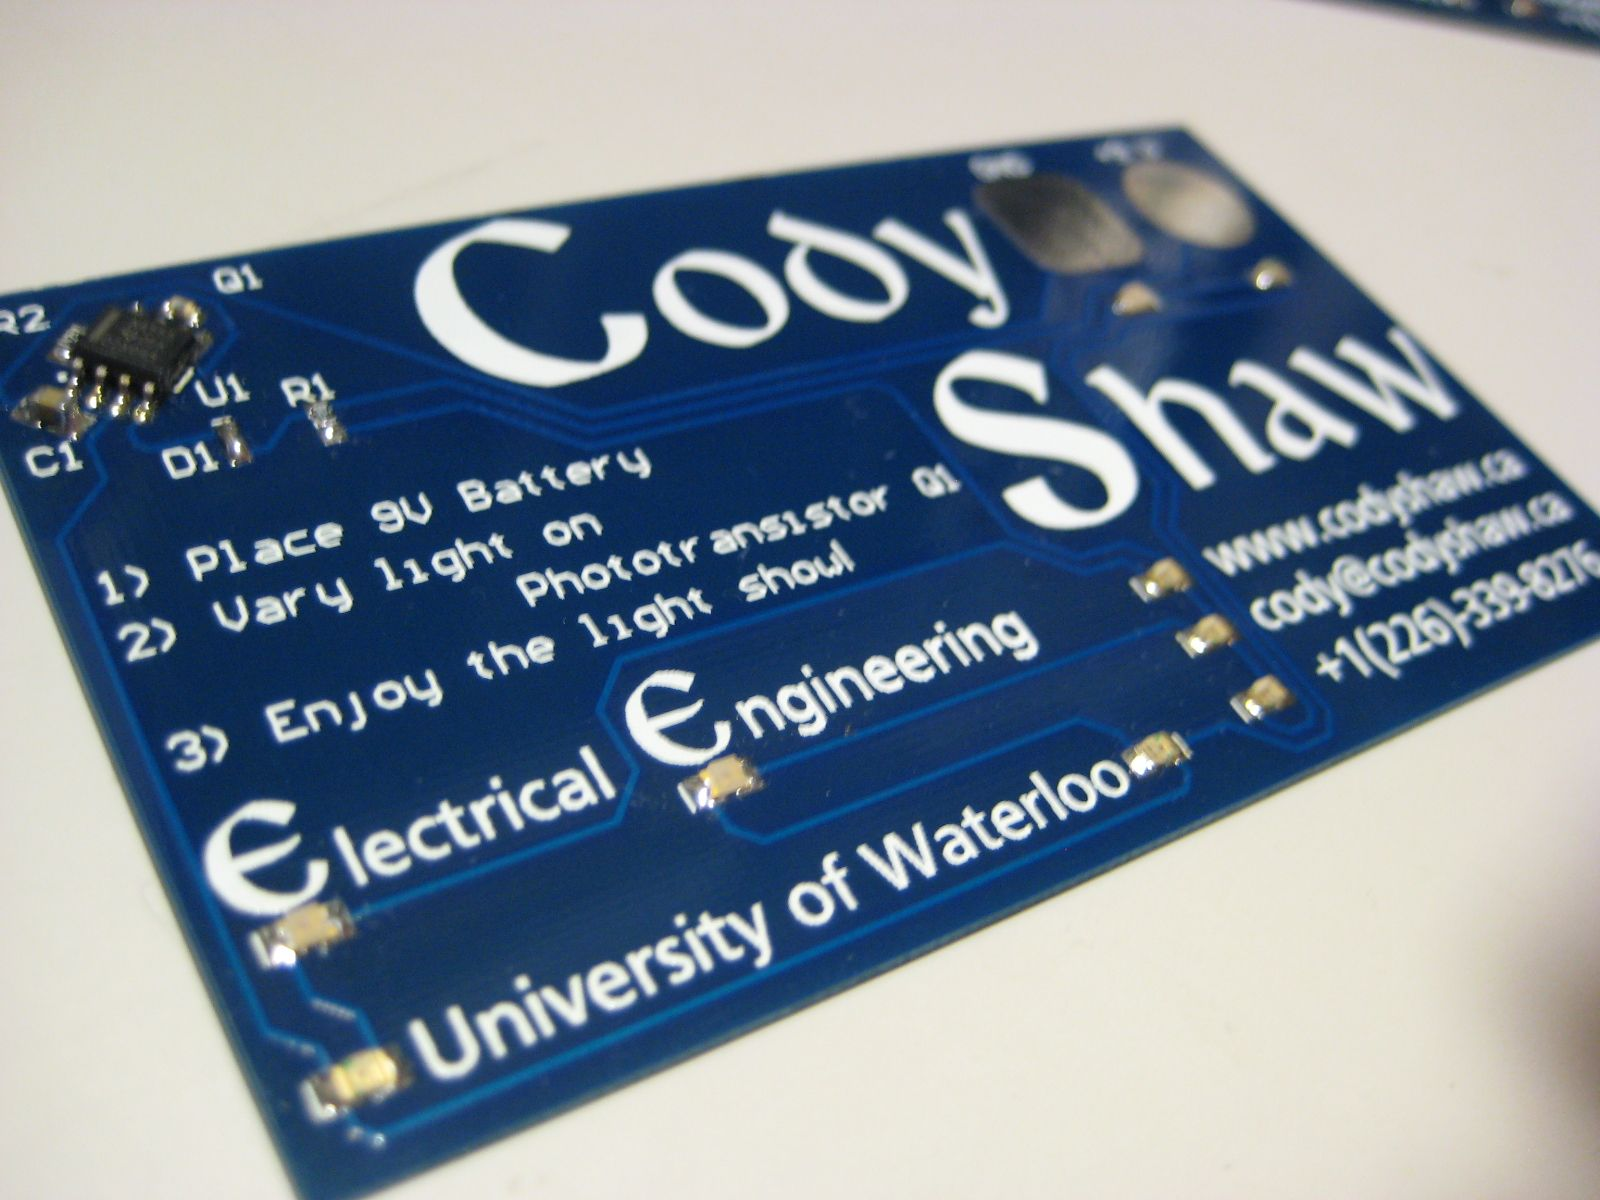 Circuit board business card business cards pinterest business circuit board business card colourmoves